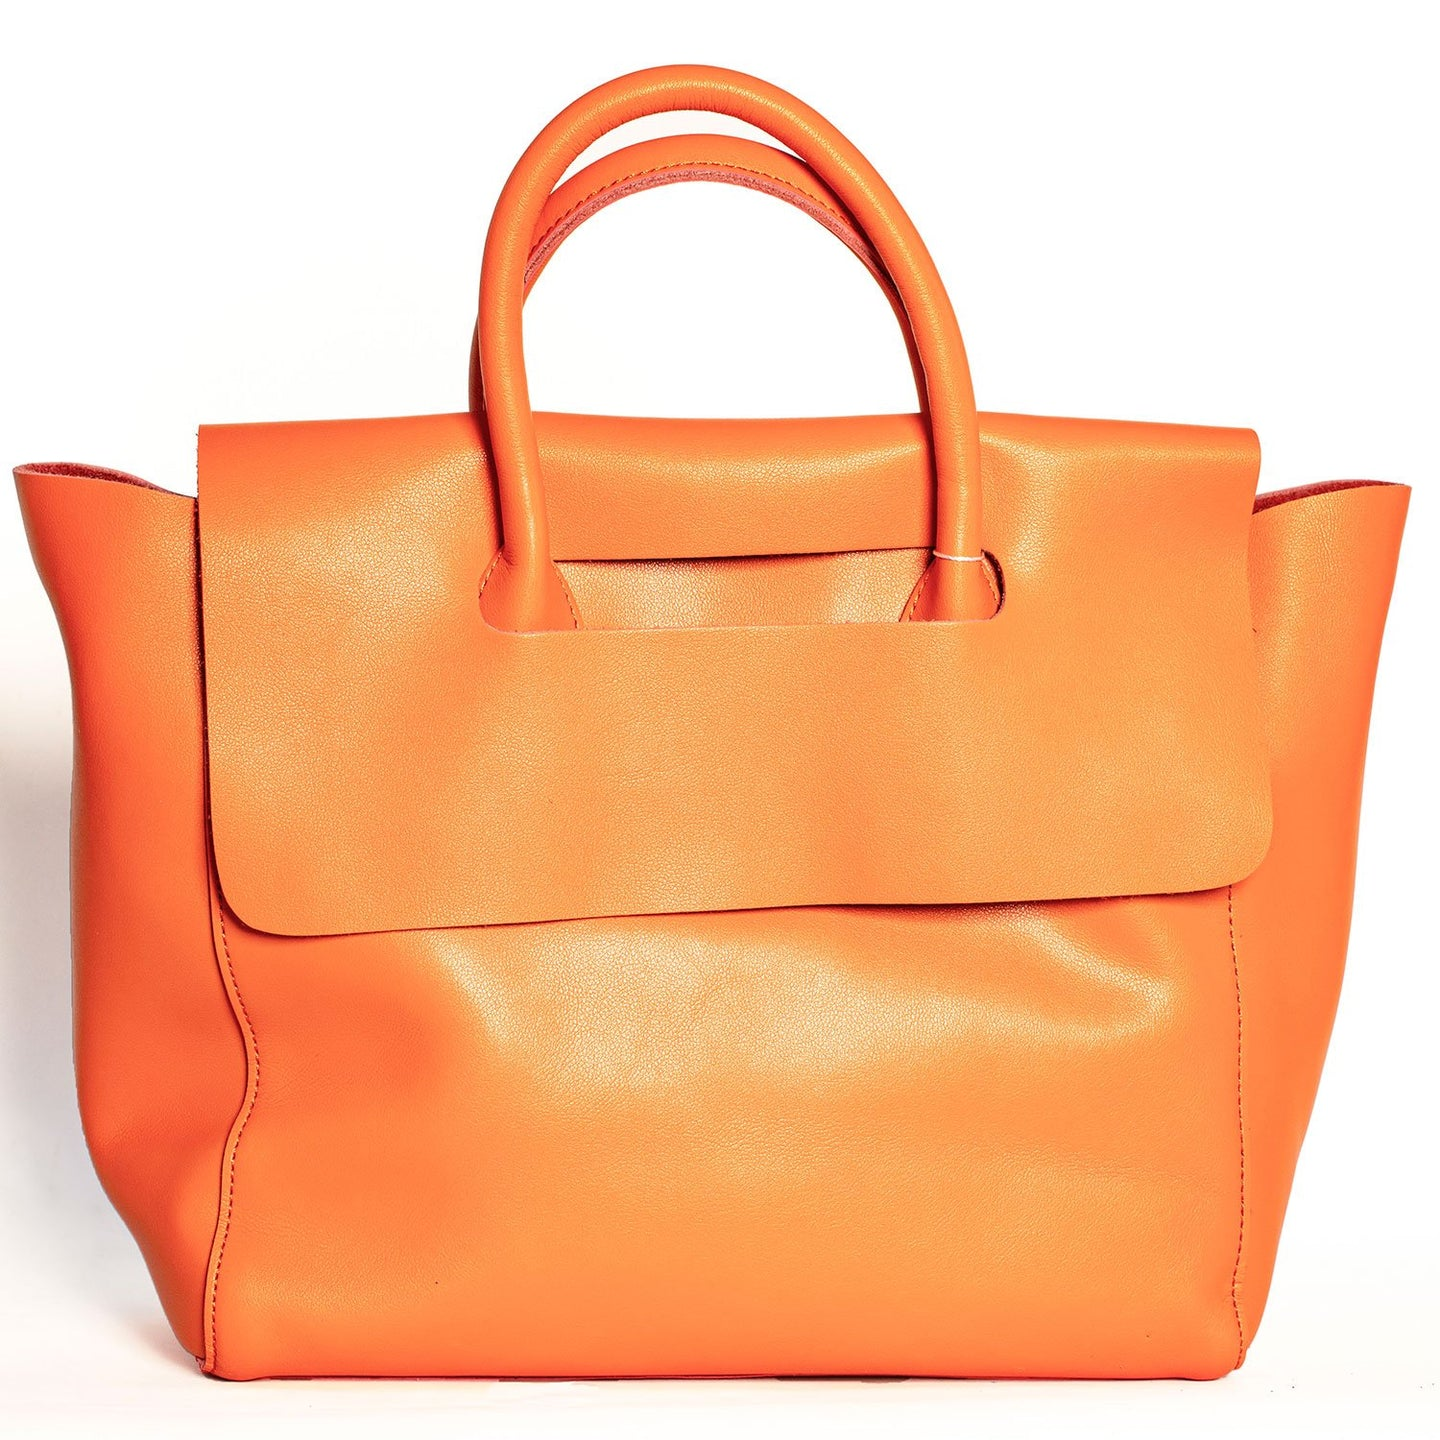 ORANGE MODERN TOTE BAG WITH REMOVABLE PURSE